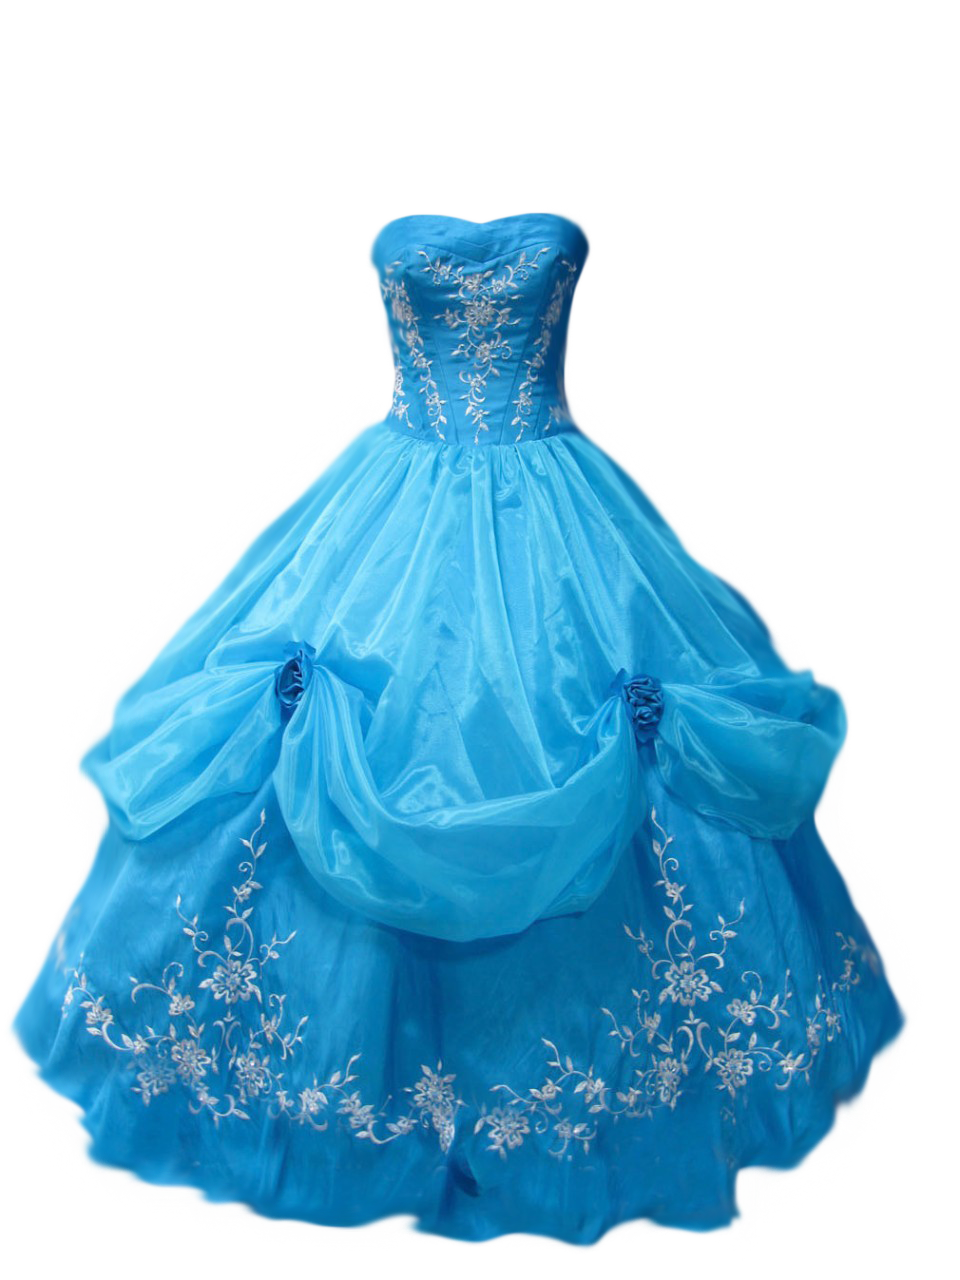 Gown png by avalonsinspirational. Clipart clothes prom